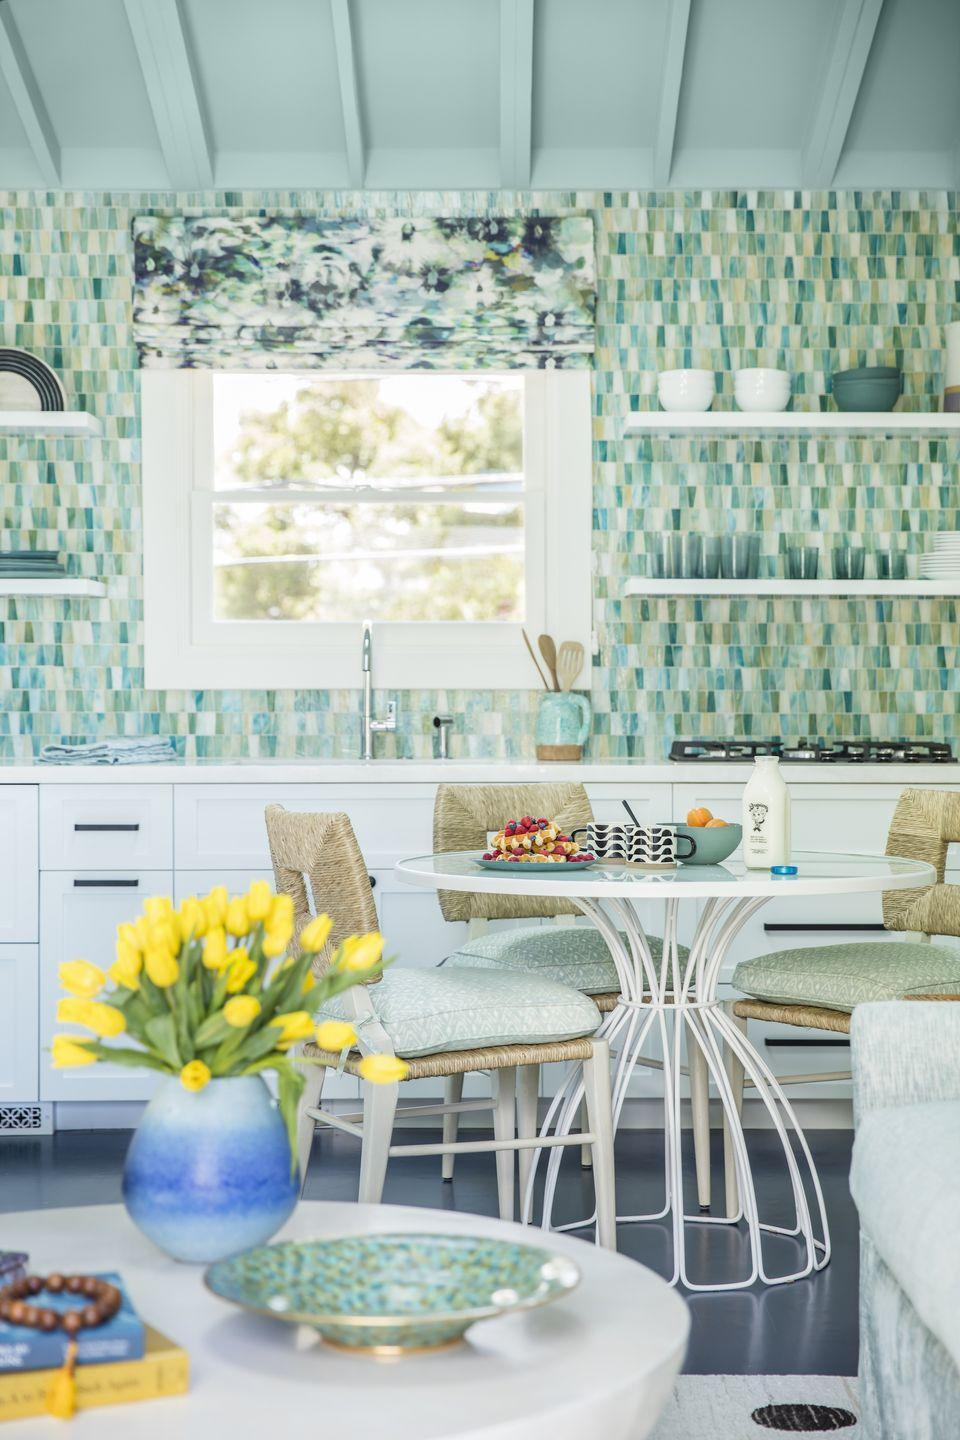 """<p>Speaking of aqua hues, designer <a href=""""https://www.markatosdesign.com/"""" rel=""""nofollow noopener"""" target=""""_blank"""" data-ylk=""""slk:Christine Markatos Lowe"""" class=""""link rapid-noclick-resp"""">Christine Markatos Lowe</a> is likewise predicting a resurgence of the midcentury-favorite shade for both cabinetry and tile applications. """"Bolder colors like turquoise and jade really pop against whites but still feel clean and fresh for a kitchen,"""" she says. </p>"""